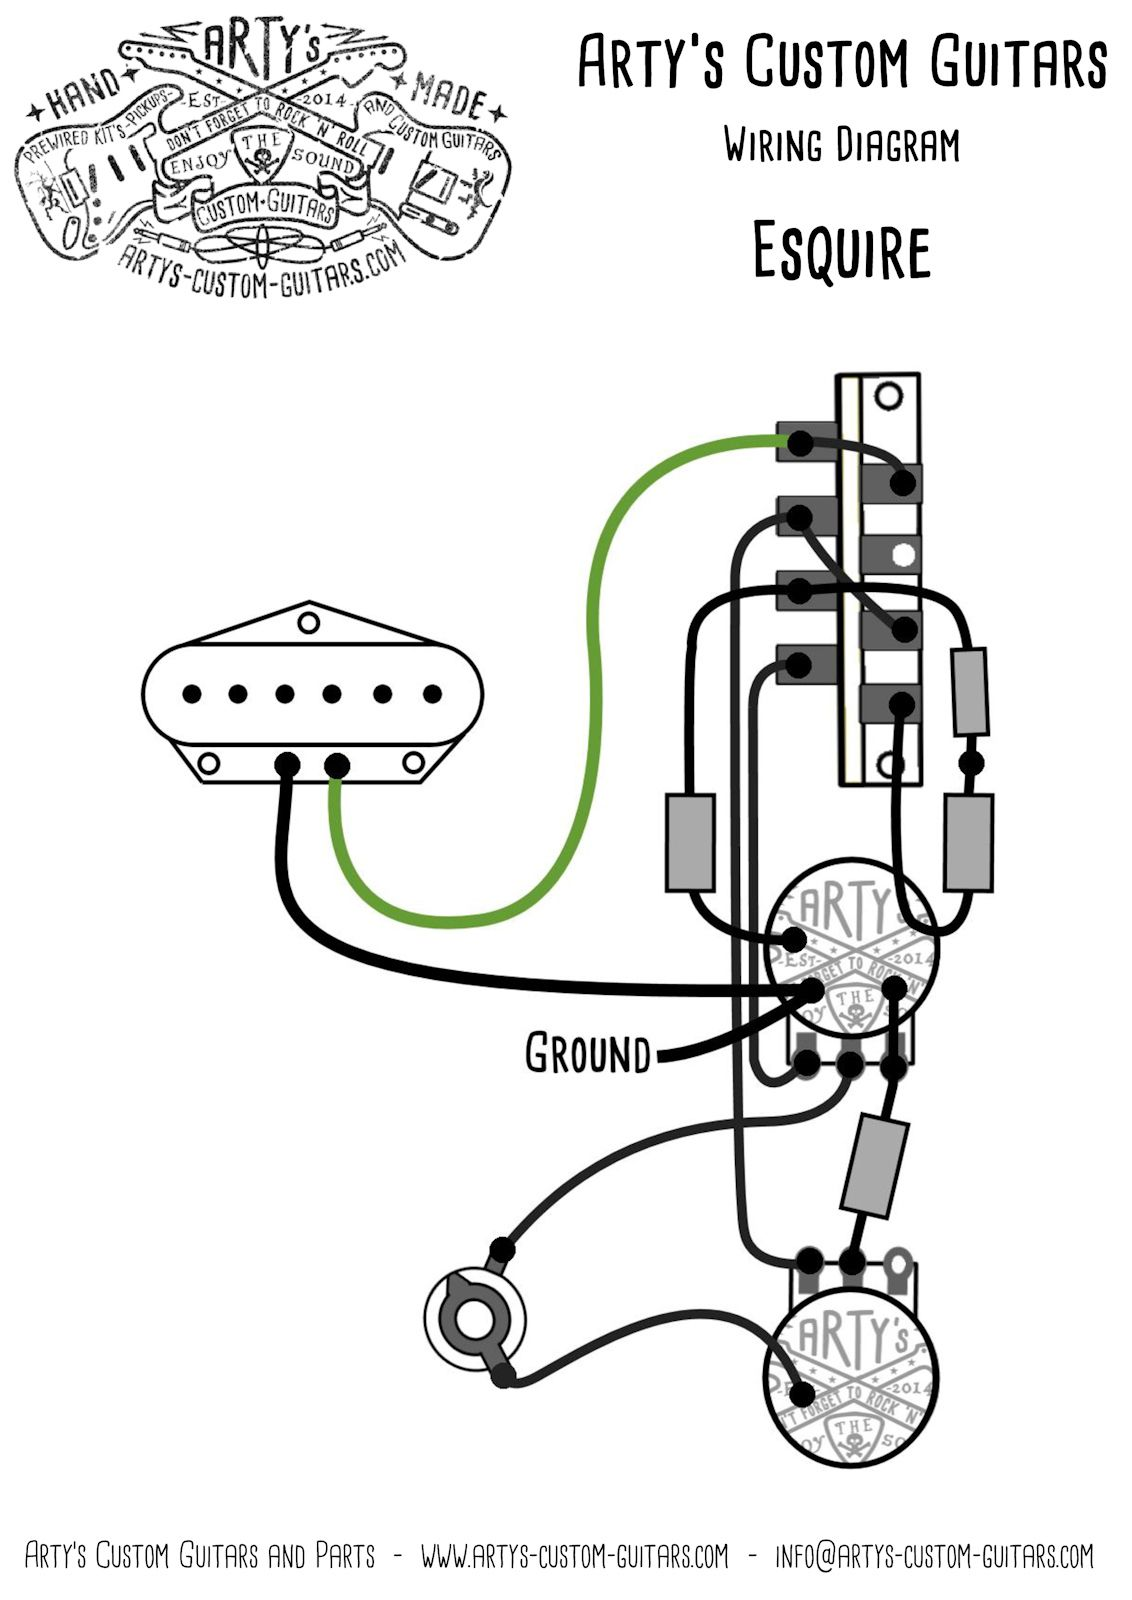 fender squier wiring diagram free picture schematic wiring diagram  fender squier wiring diagram free picture schematic #14